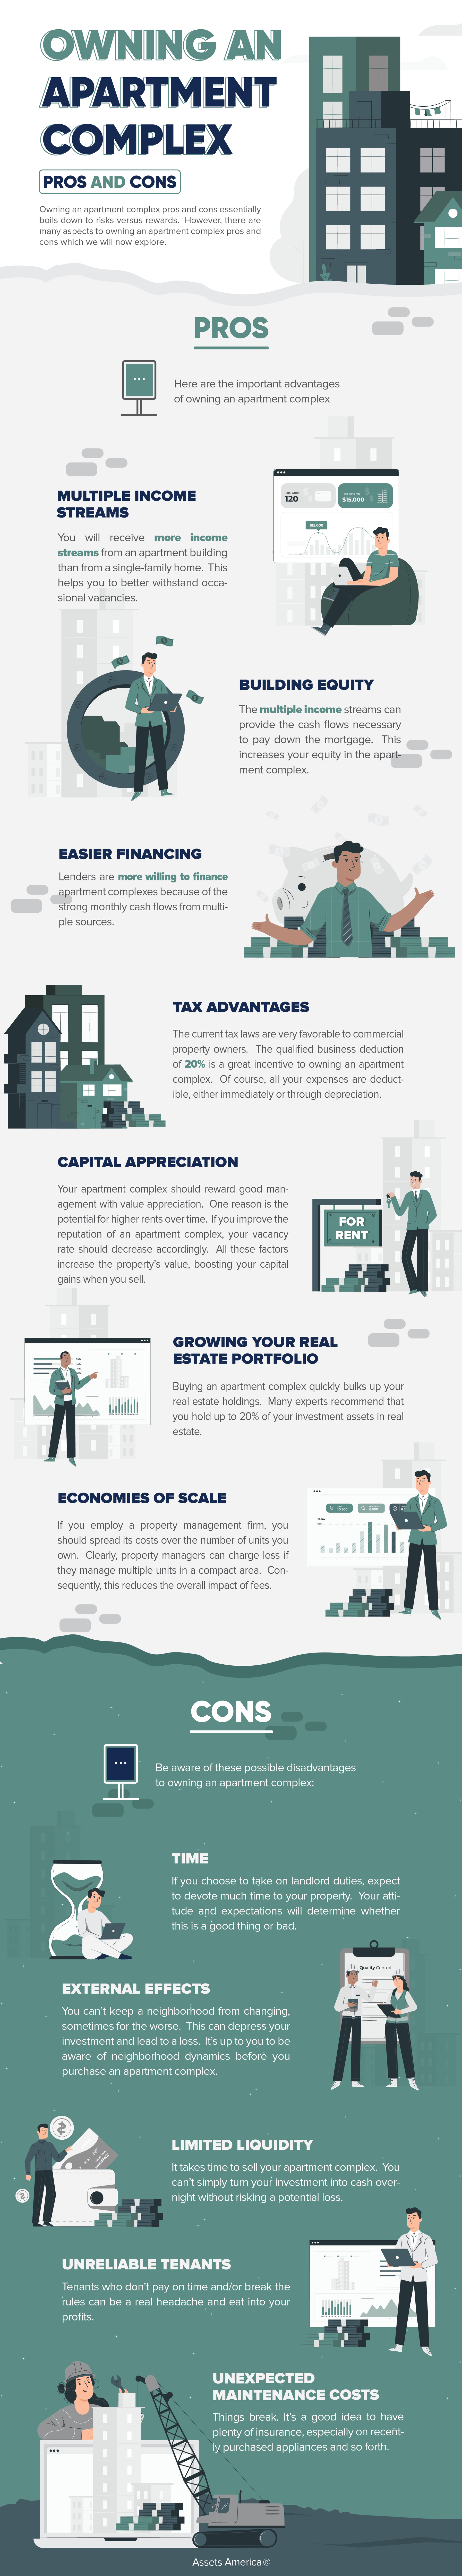 An infographic with the pros and cons of owning an apartment complex